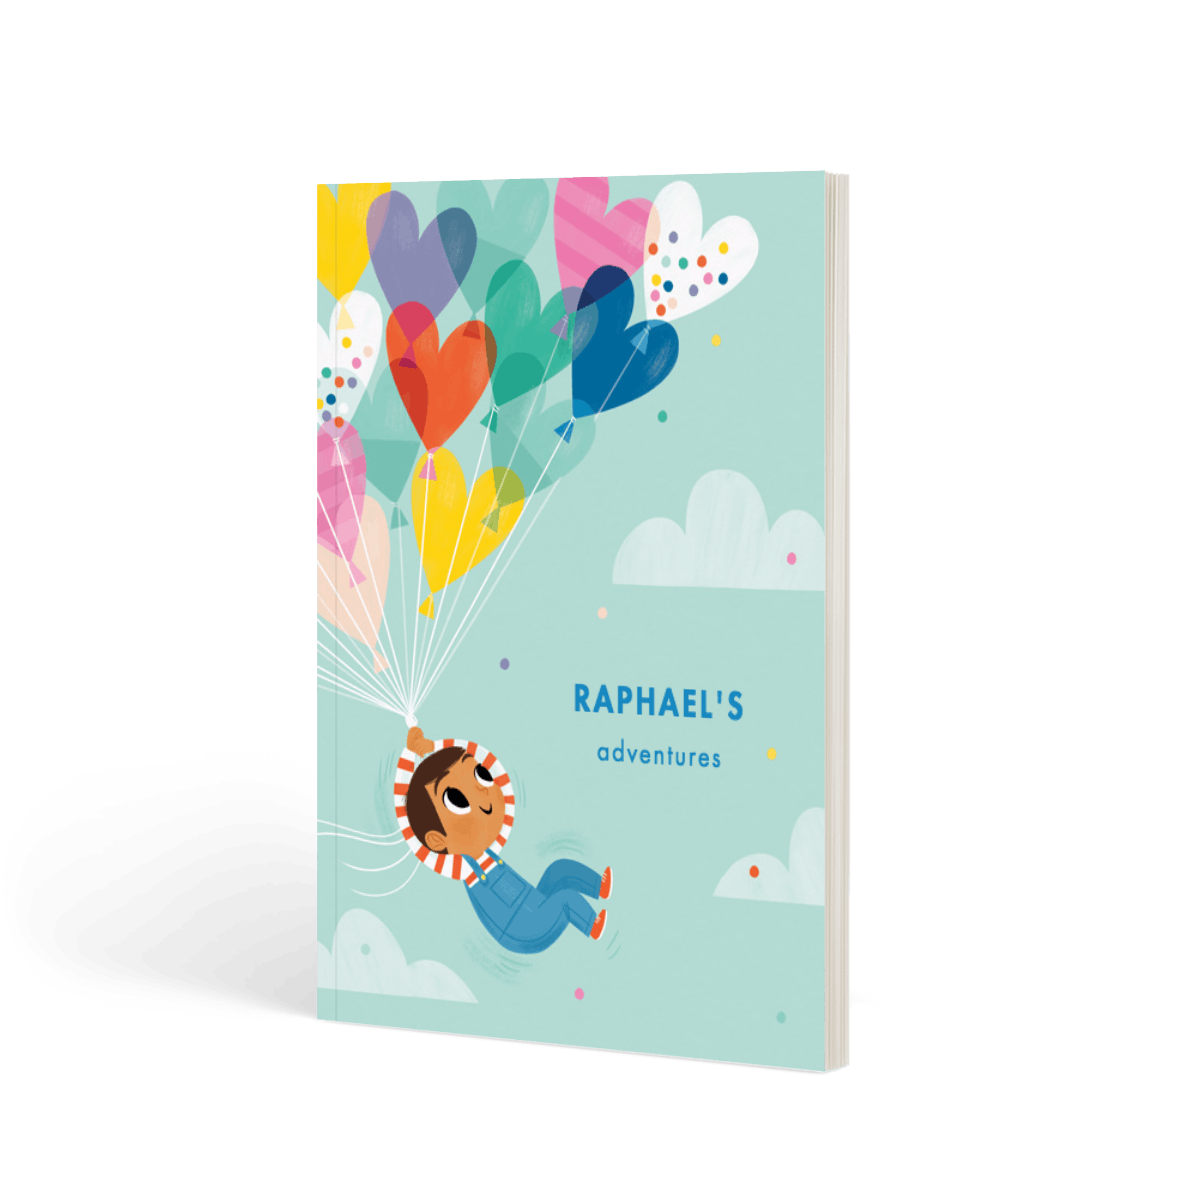 Https%3a%2f%2fwww.papier.com%2fproduct image%2f31616%2f6%2fballoon boy ii 7941 front 1511372564.png?ixlib=rb 1.1